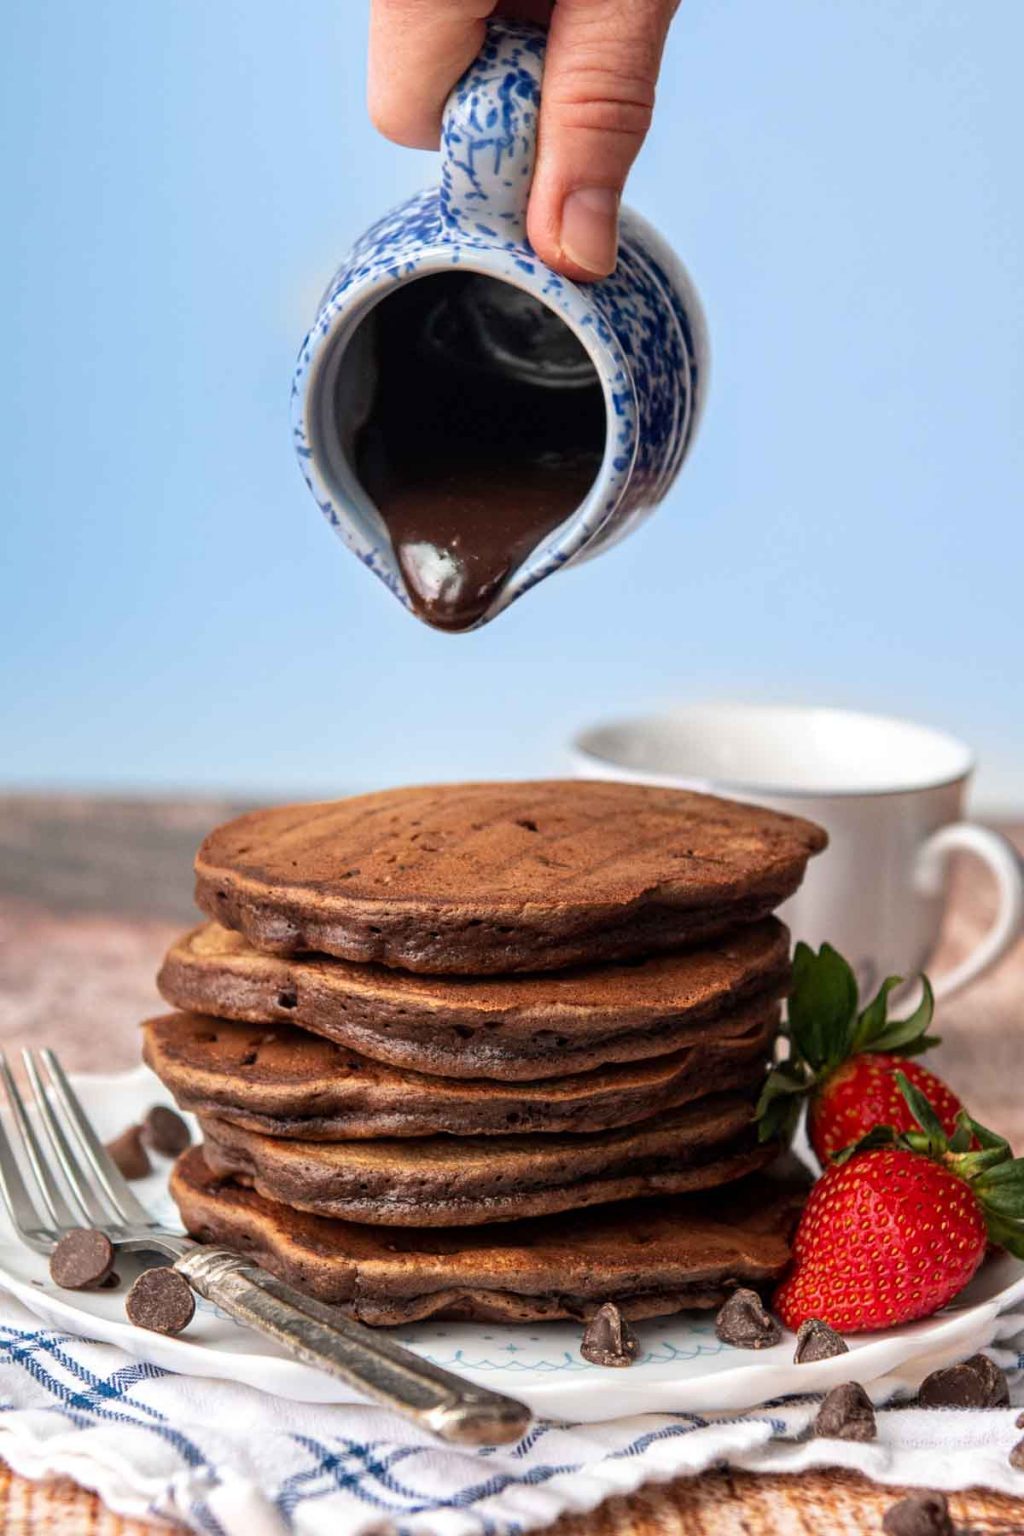 chocolate syrup about to go on a stack of chocolate pancakes